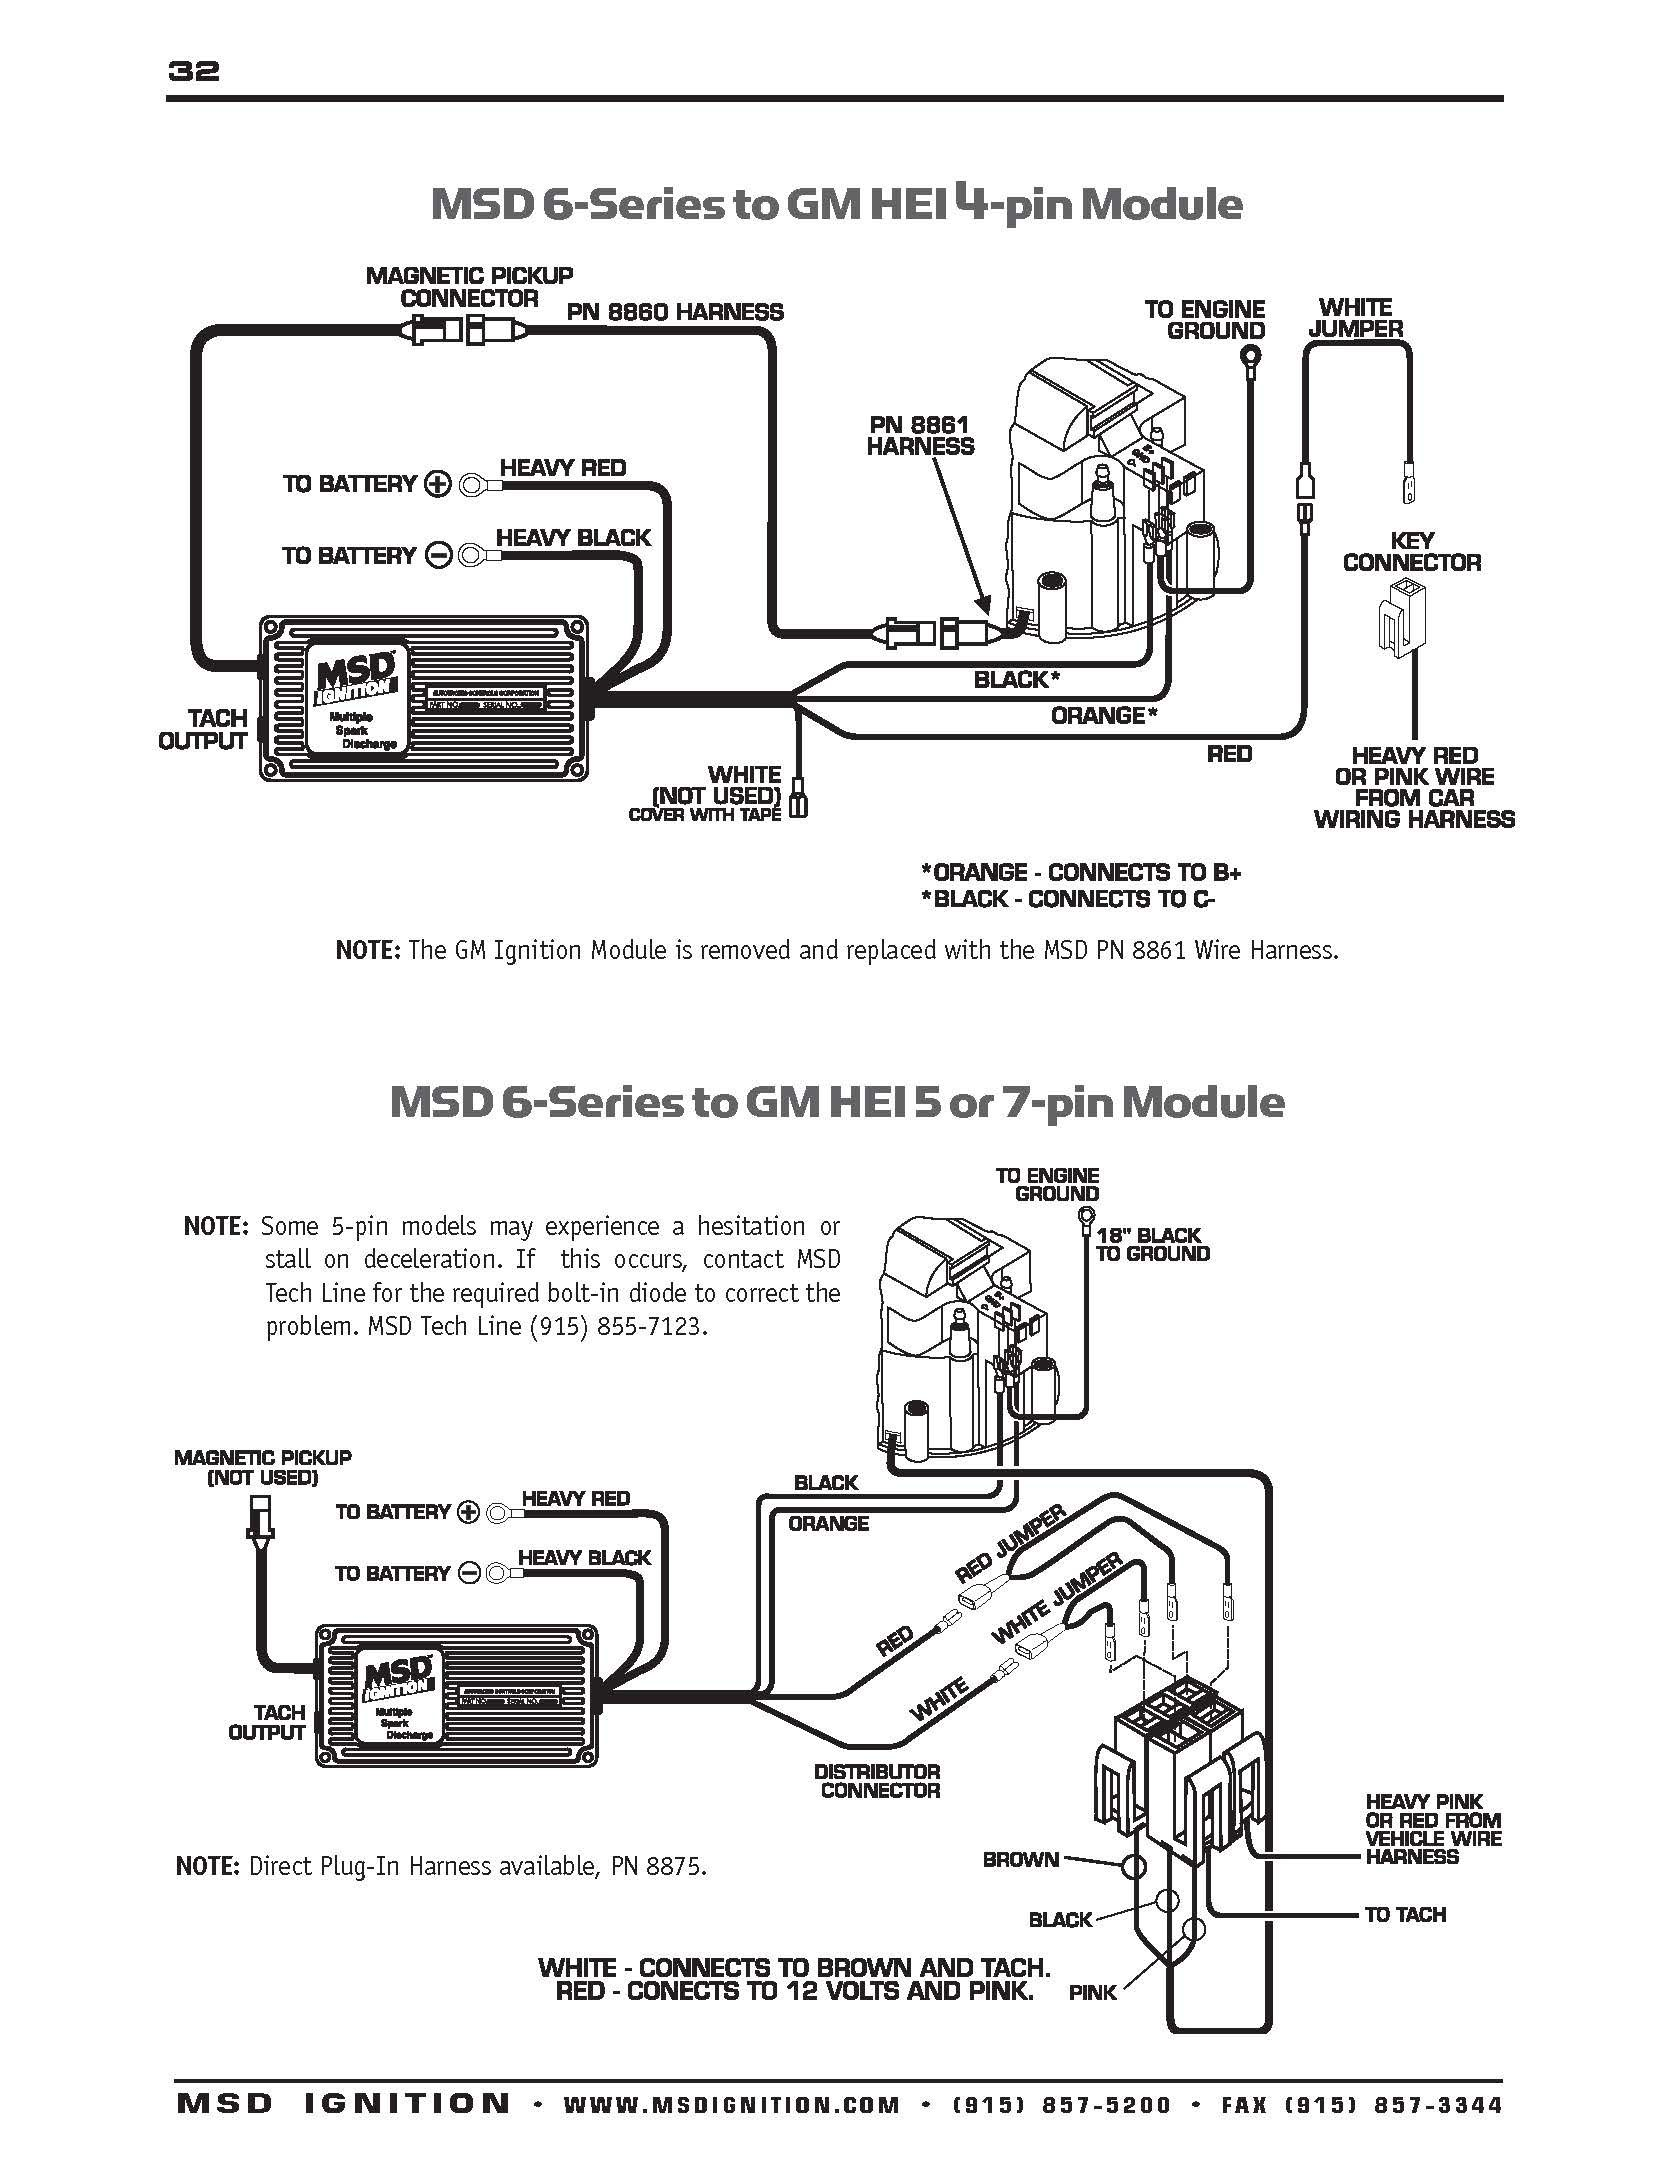 medium resolution of msd ignition wiring diagrams 7531 wiring diagram article reviewmsd ignition wiring diagrams 7531 wiring diagram megamsd